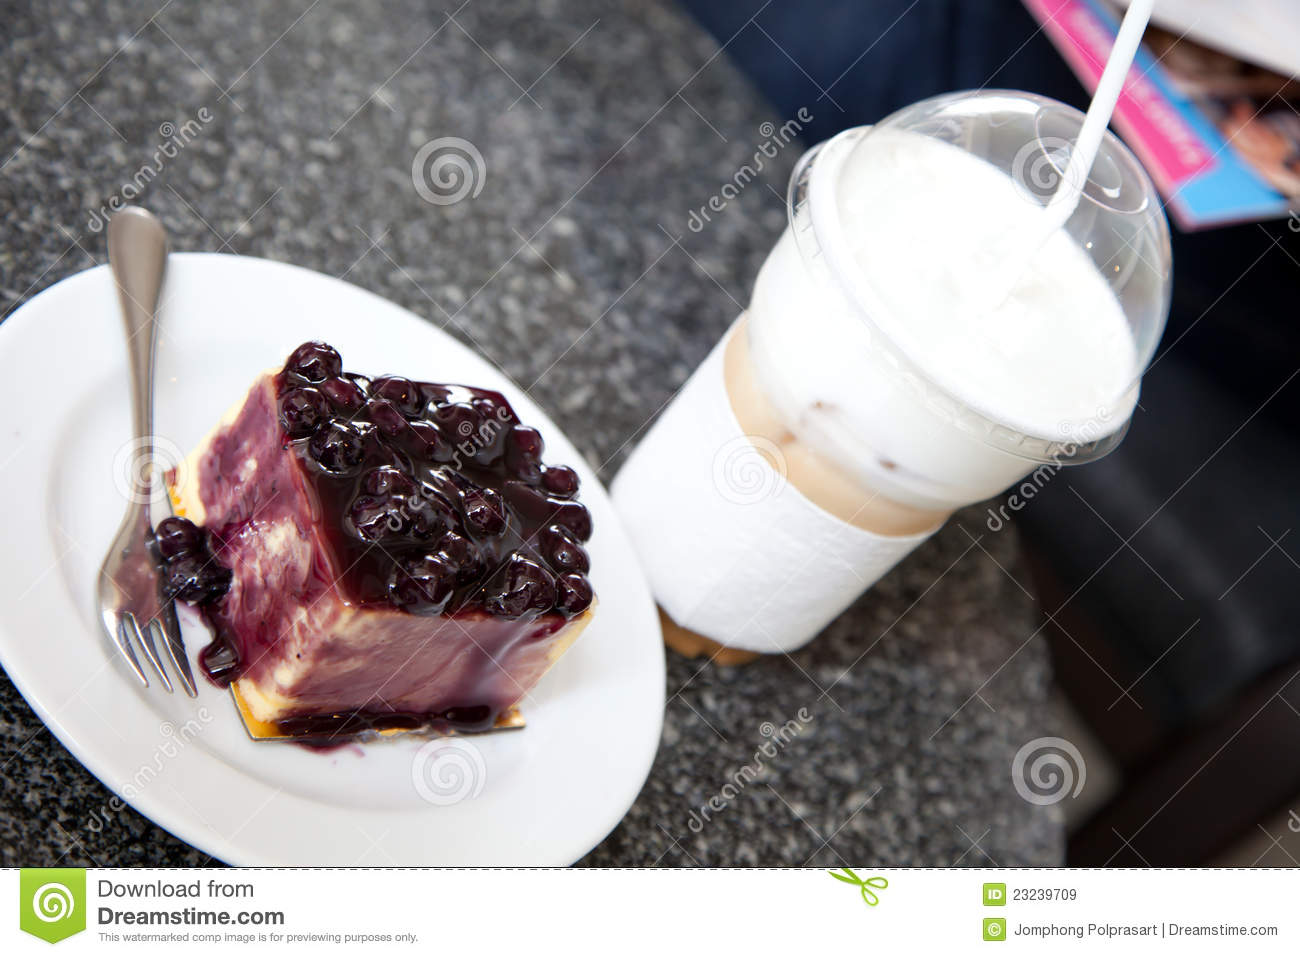 Blueberry Cake And Capuchino Ice Coffee Royalty Free Stock Images ...